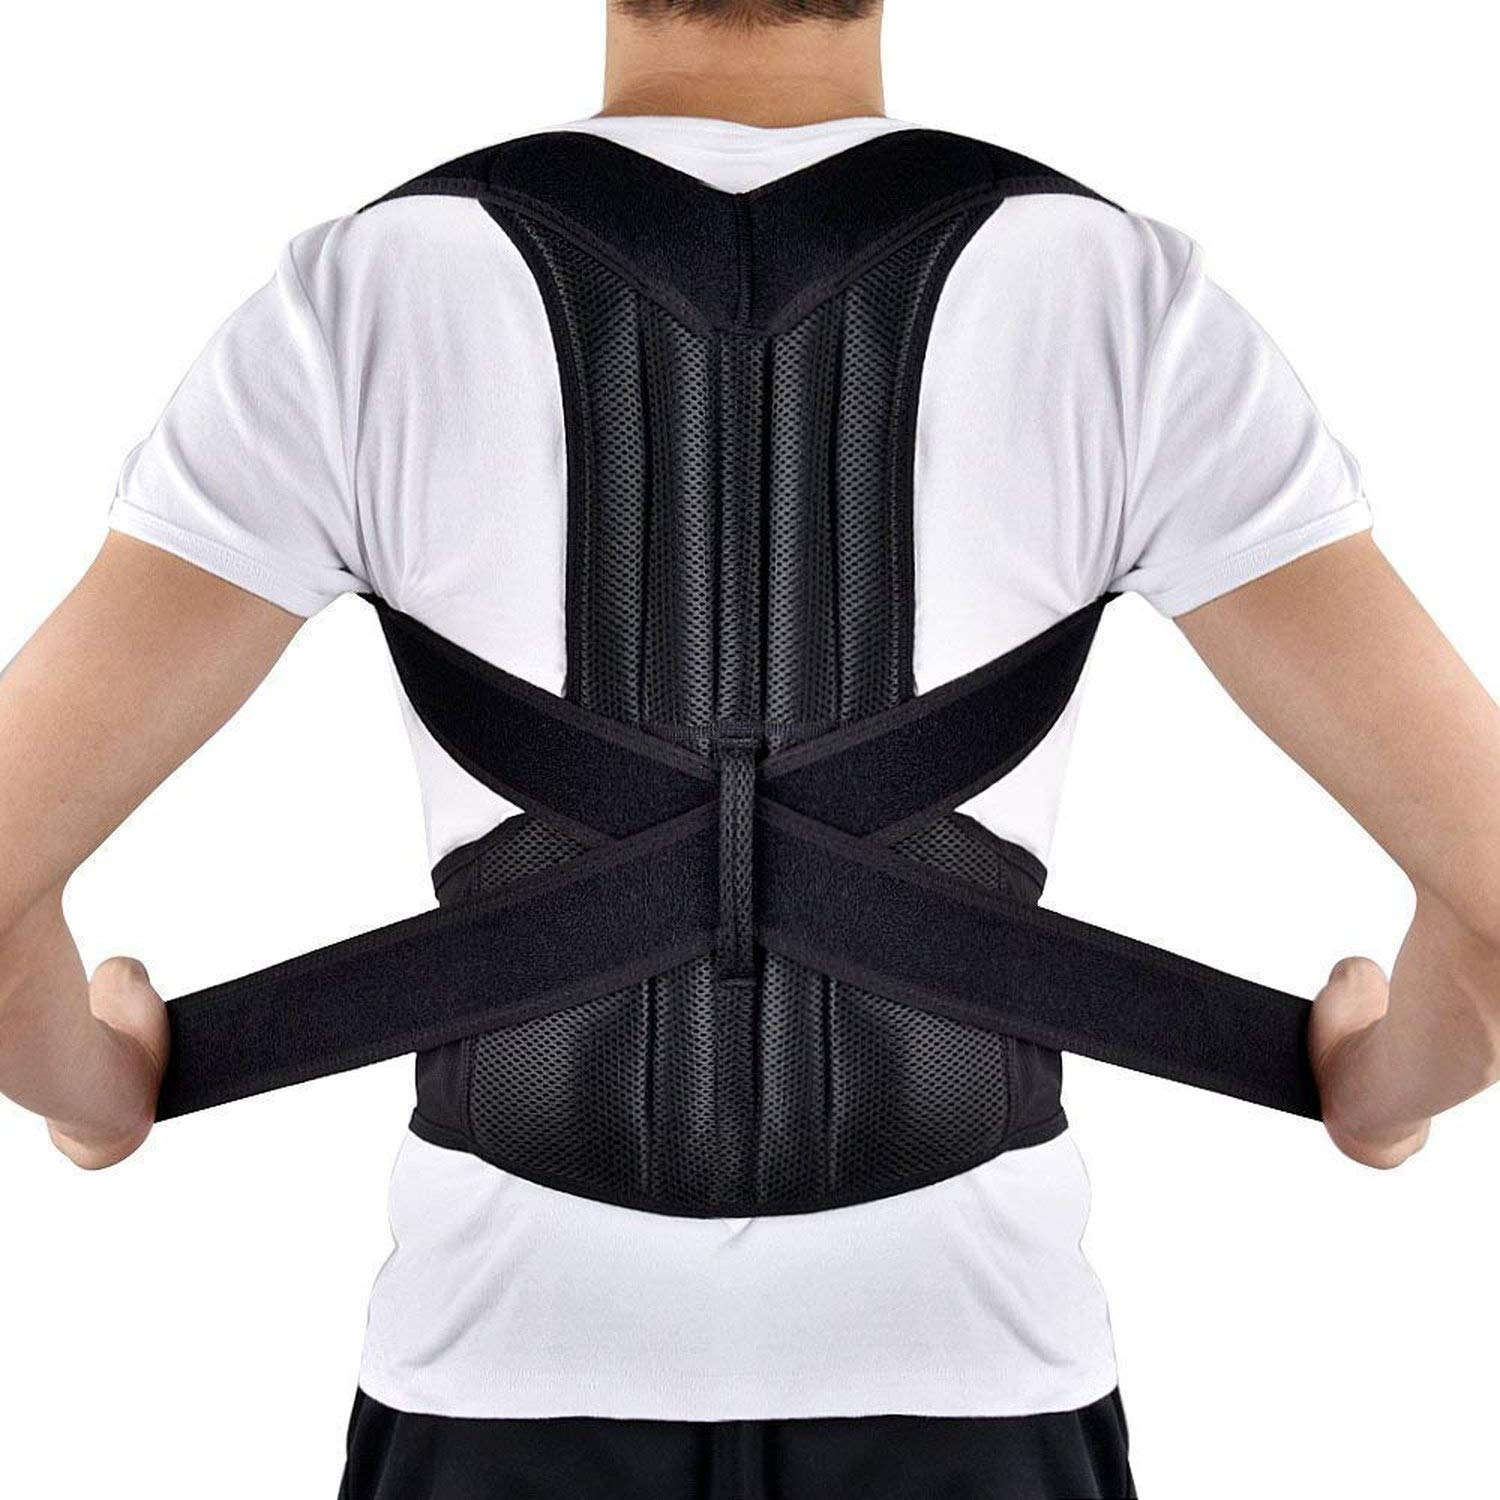 Back Brace Shoulder Support Trainer Pain Relief & Improve Bad Slouching Problems Fully Adjustable,M